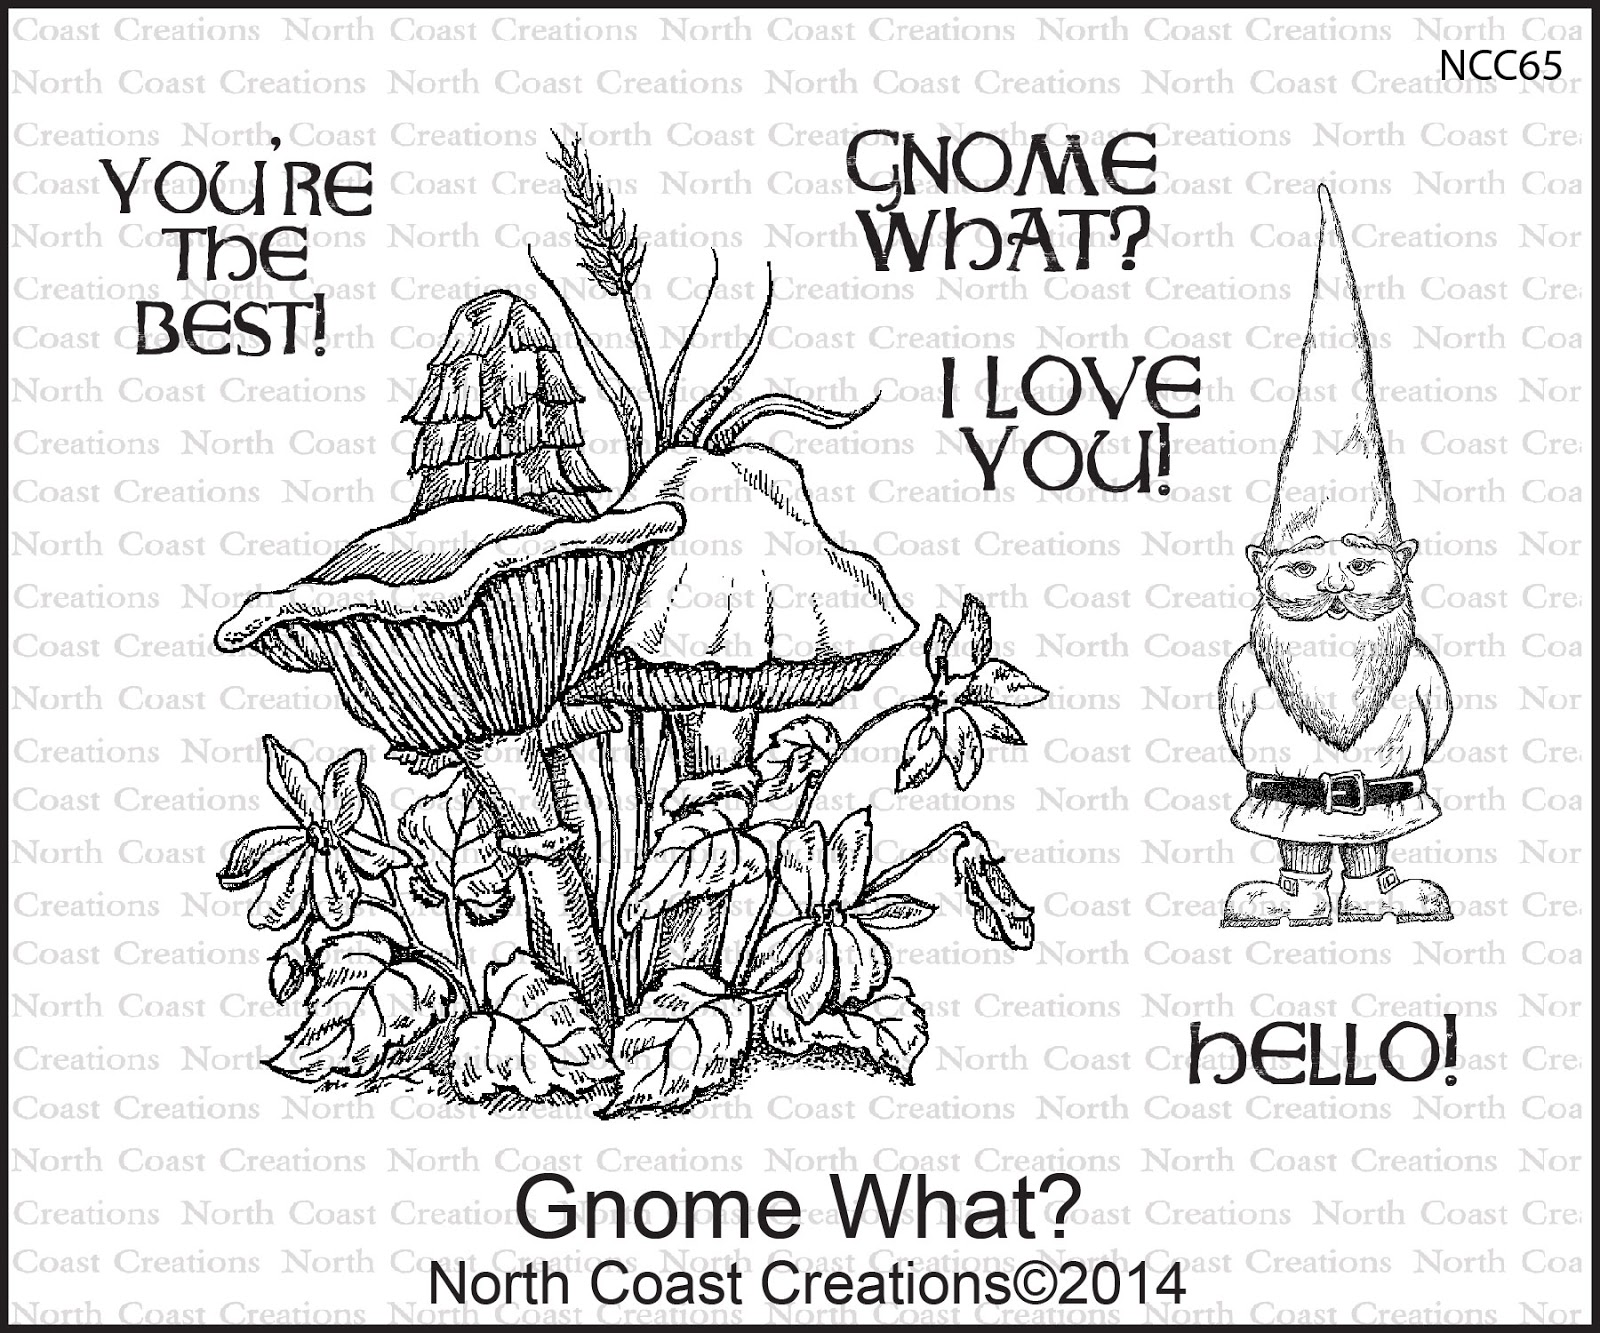 Stamps - North Coast Creations Gnome What?